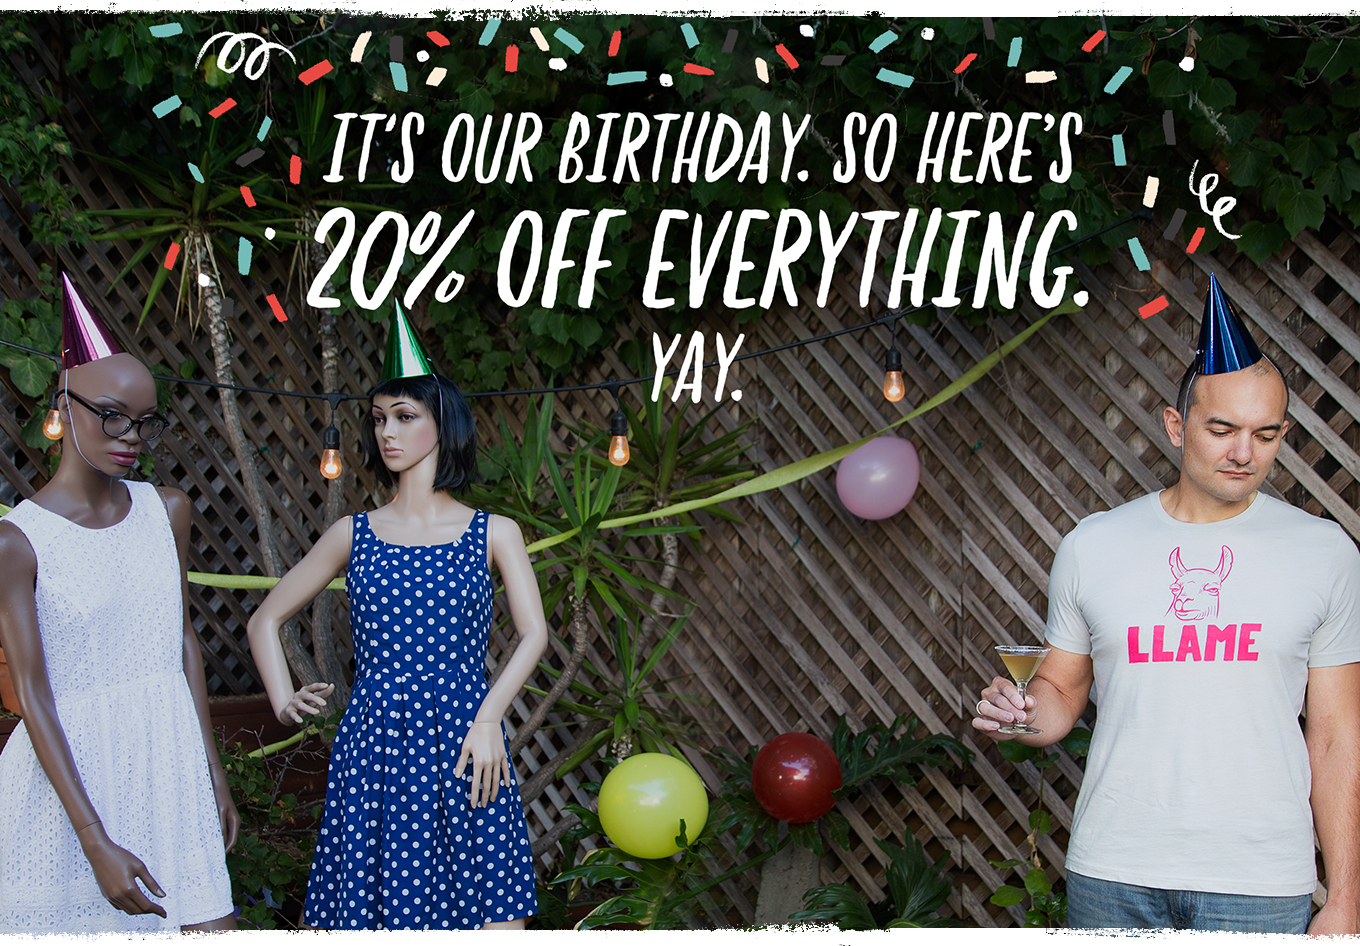 IT'S OUR BIRTHDAY. SO HERE'S 20% OFF EVERYTHING. YAY.